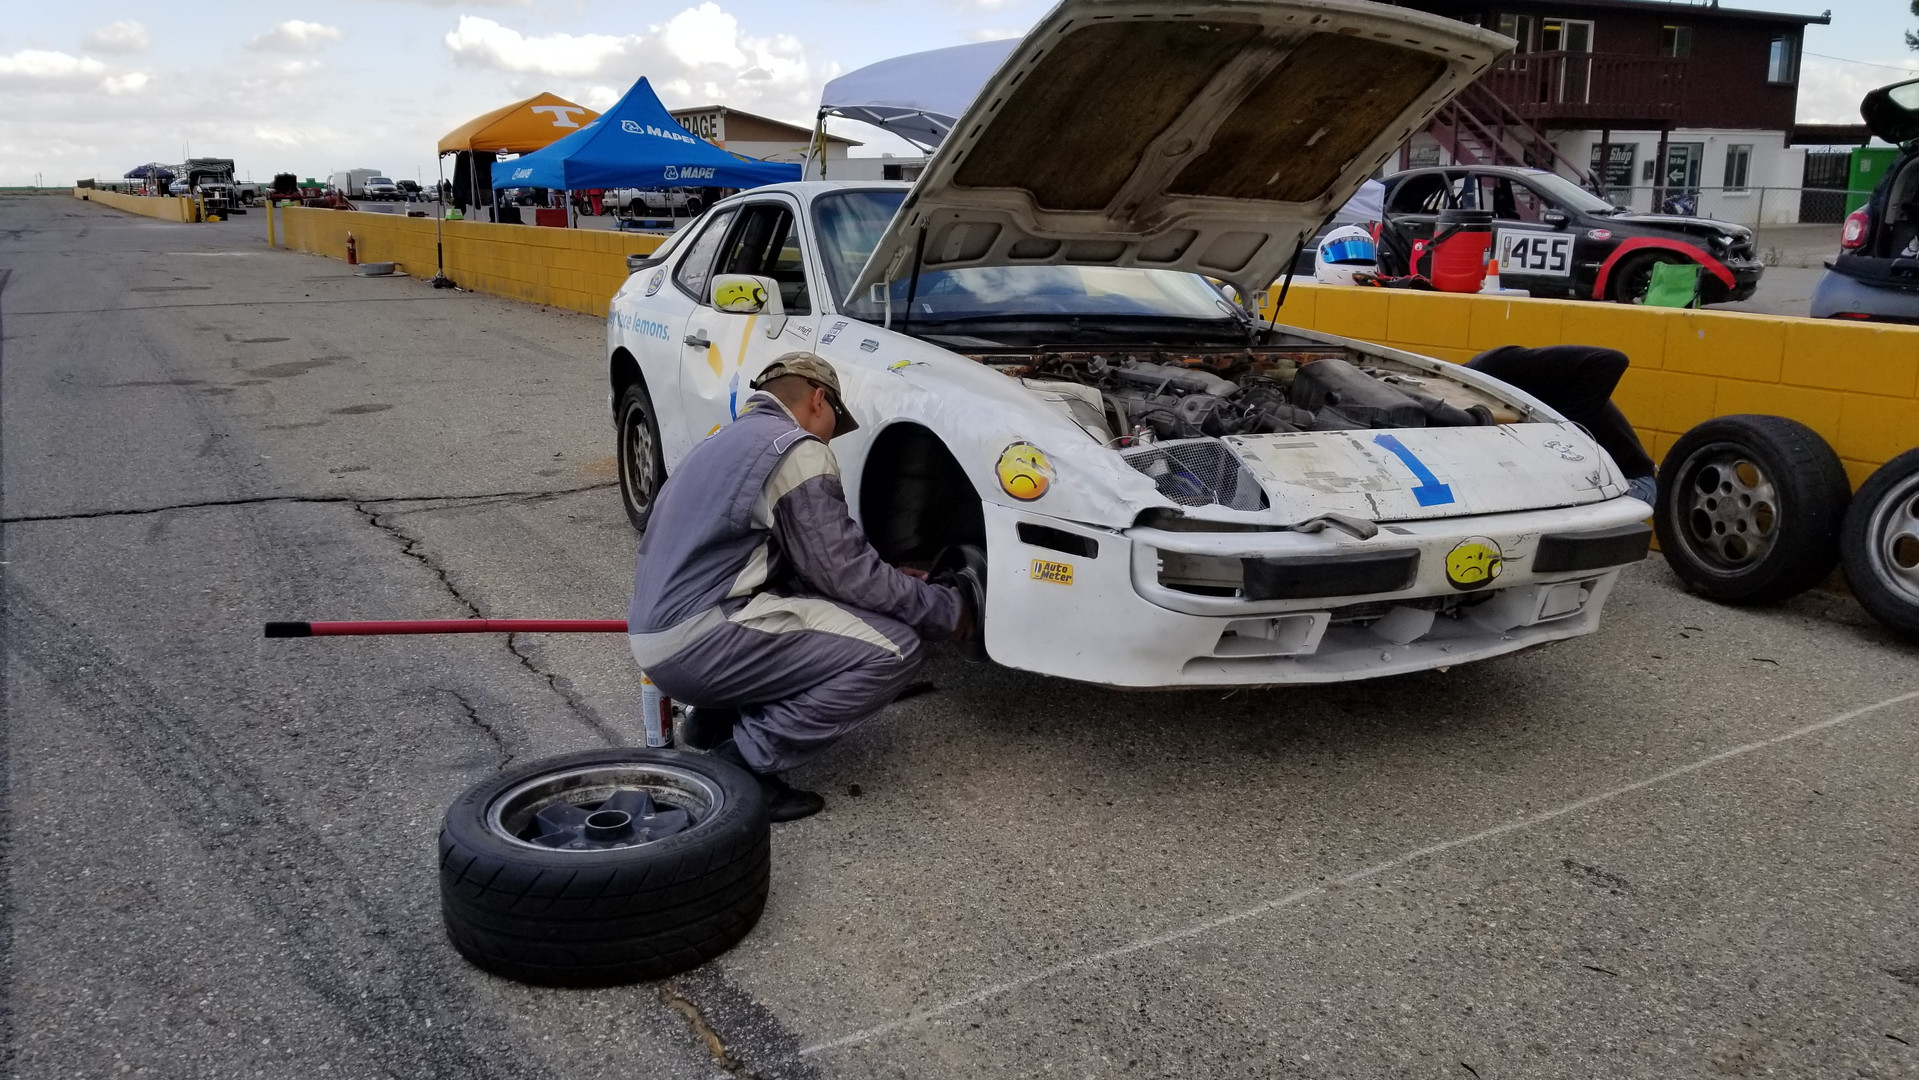 Mike prepping the Porsche